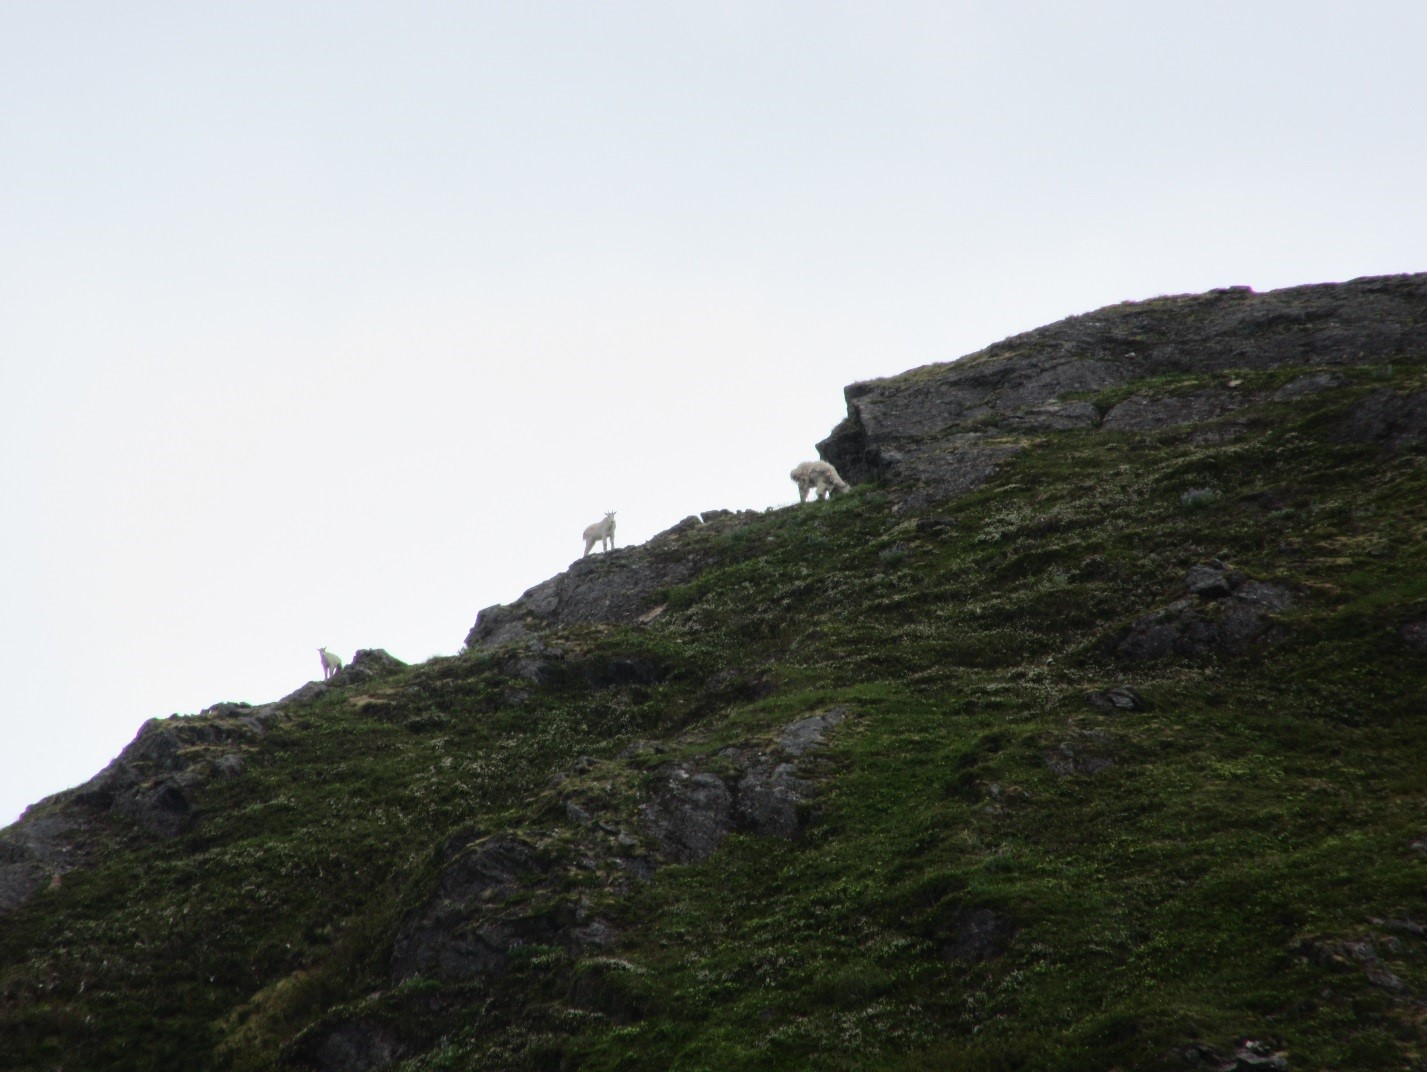 Other goats look on. Photo: Gavin McNamara.